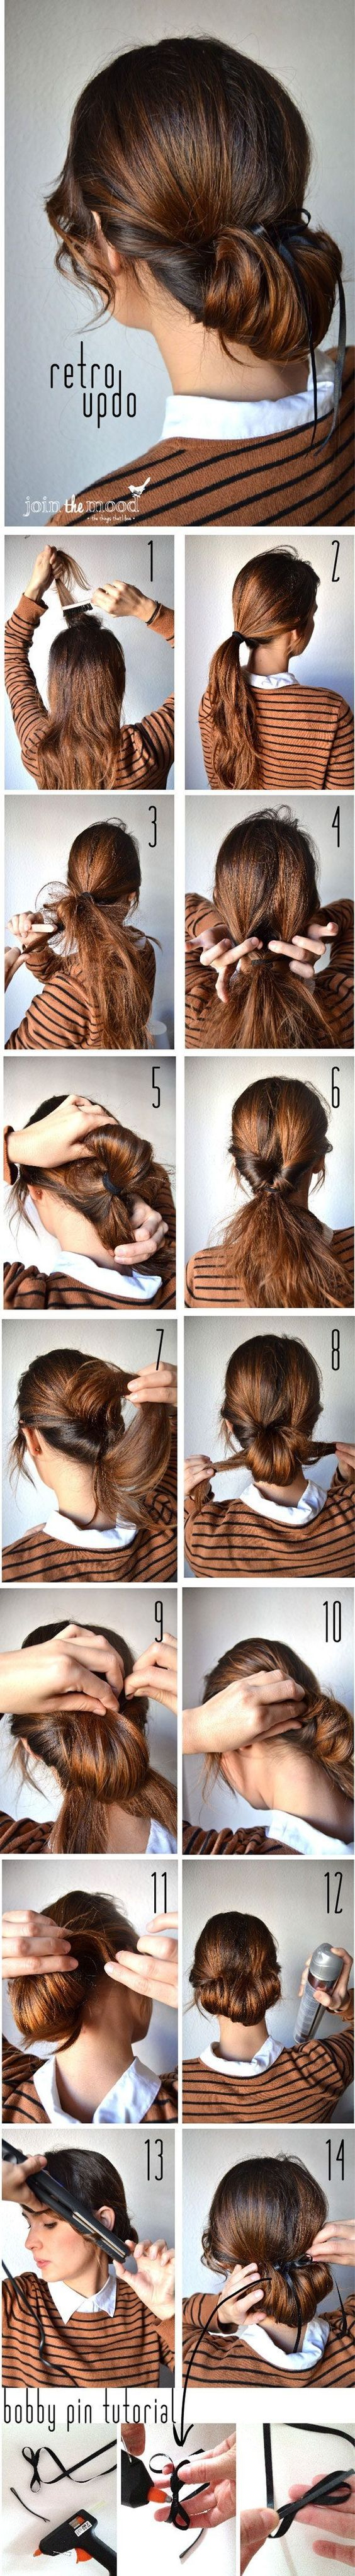 Updo, Bun updo and Retro on Pinterest